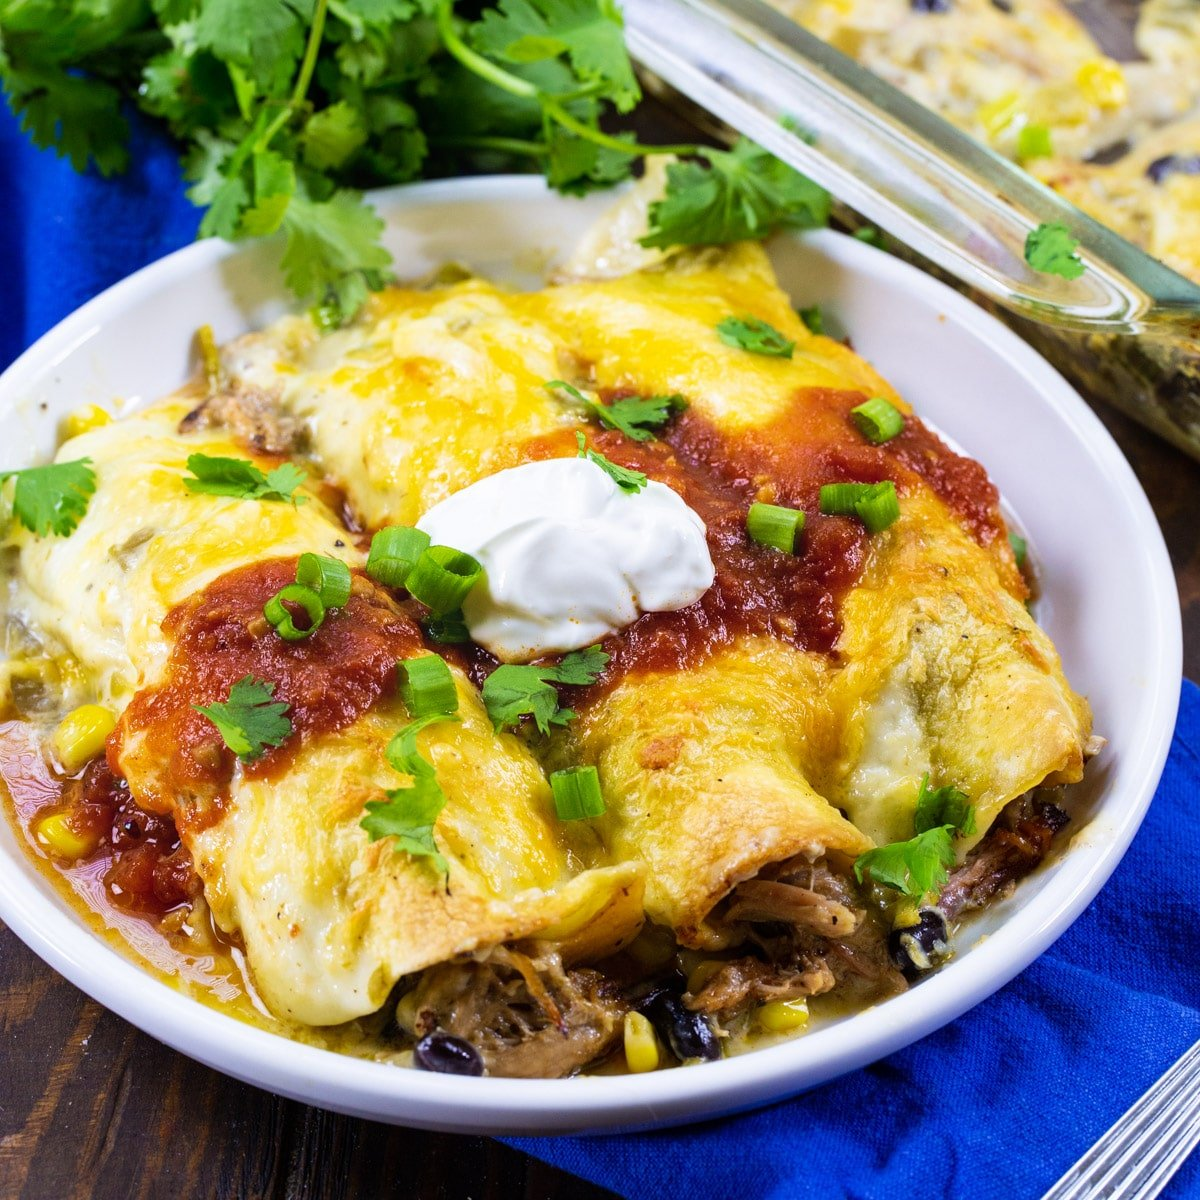 Three Pulled Pork Enchiladas topped with sour cream on a plate.